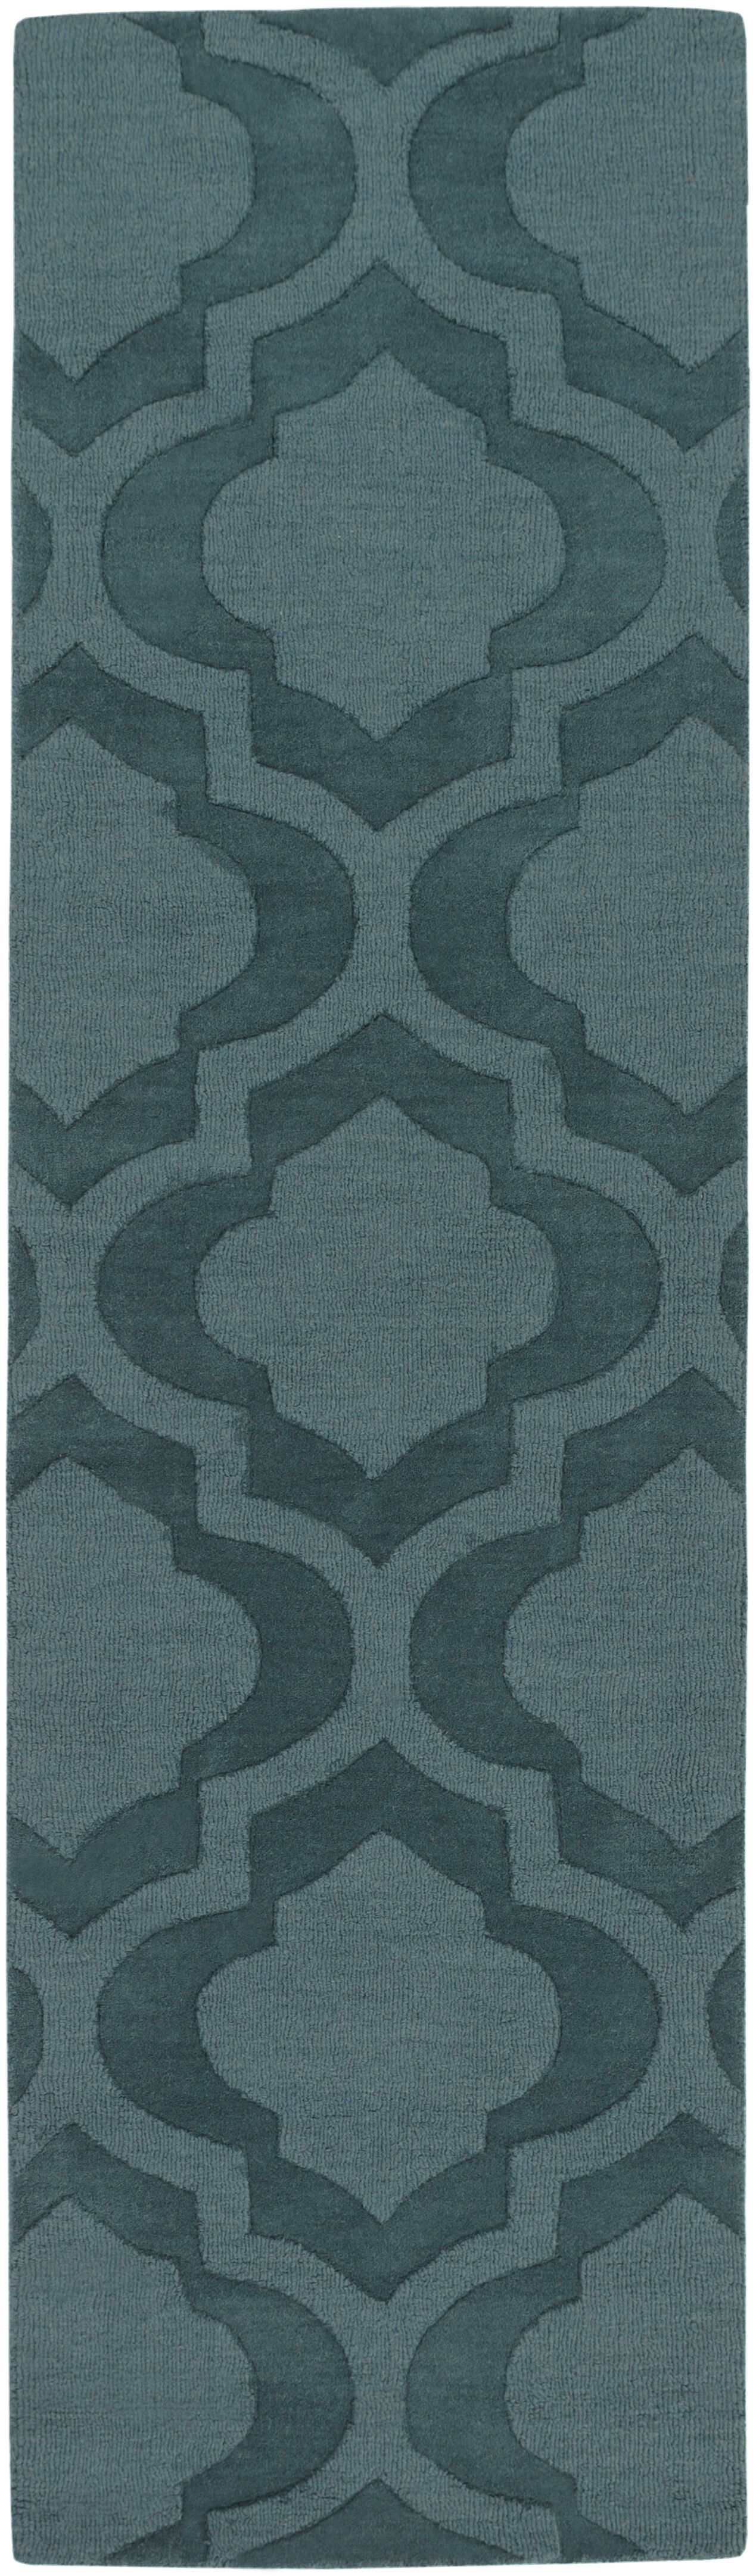 Castro Hand Woven Wool Teal Area Rug Rug Size: Runner 2'3